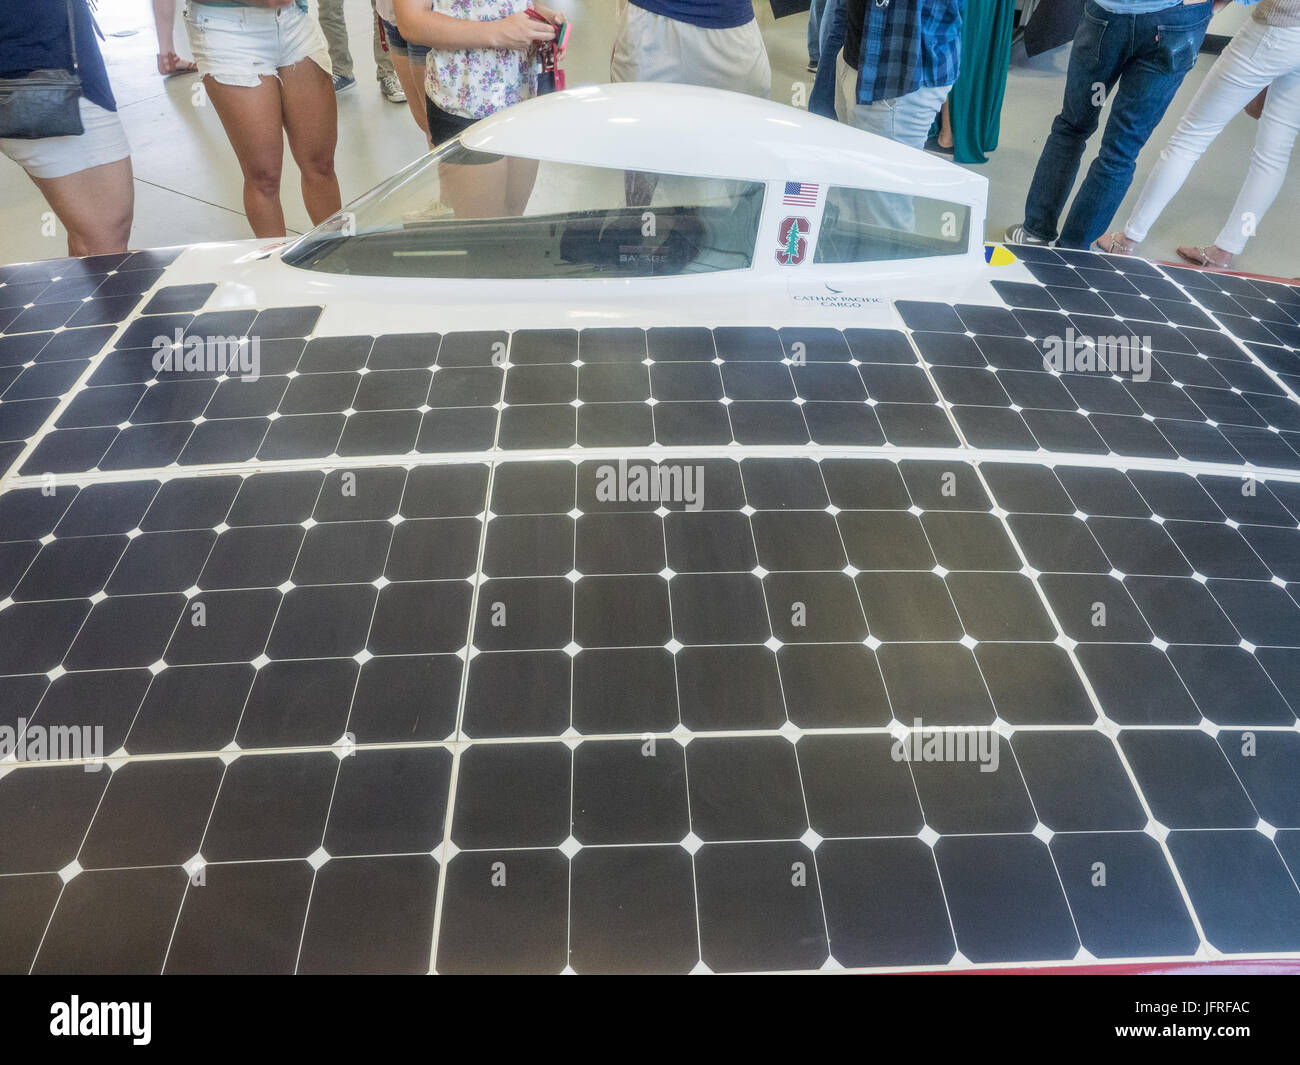 Cockpit Smart Car Stock Photos Images Solar Panel Stanford Ca Usa July 1 2017 The Project